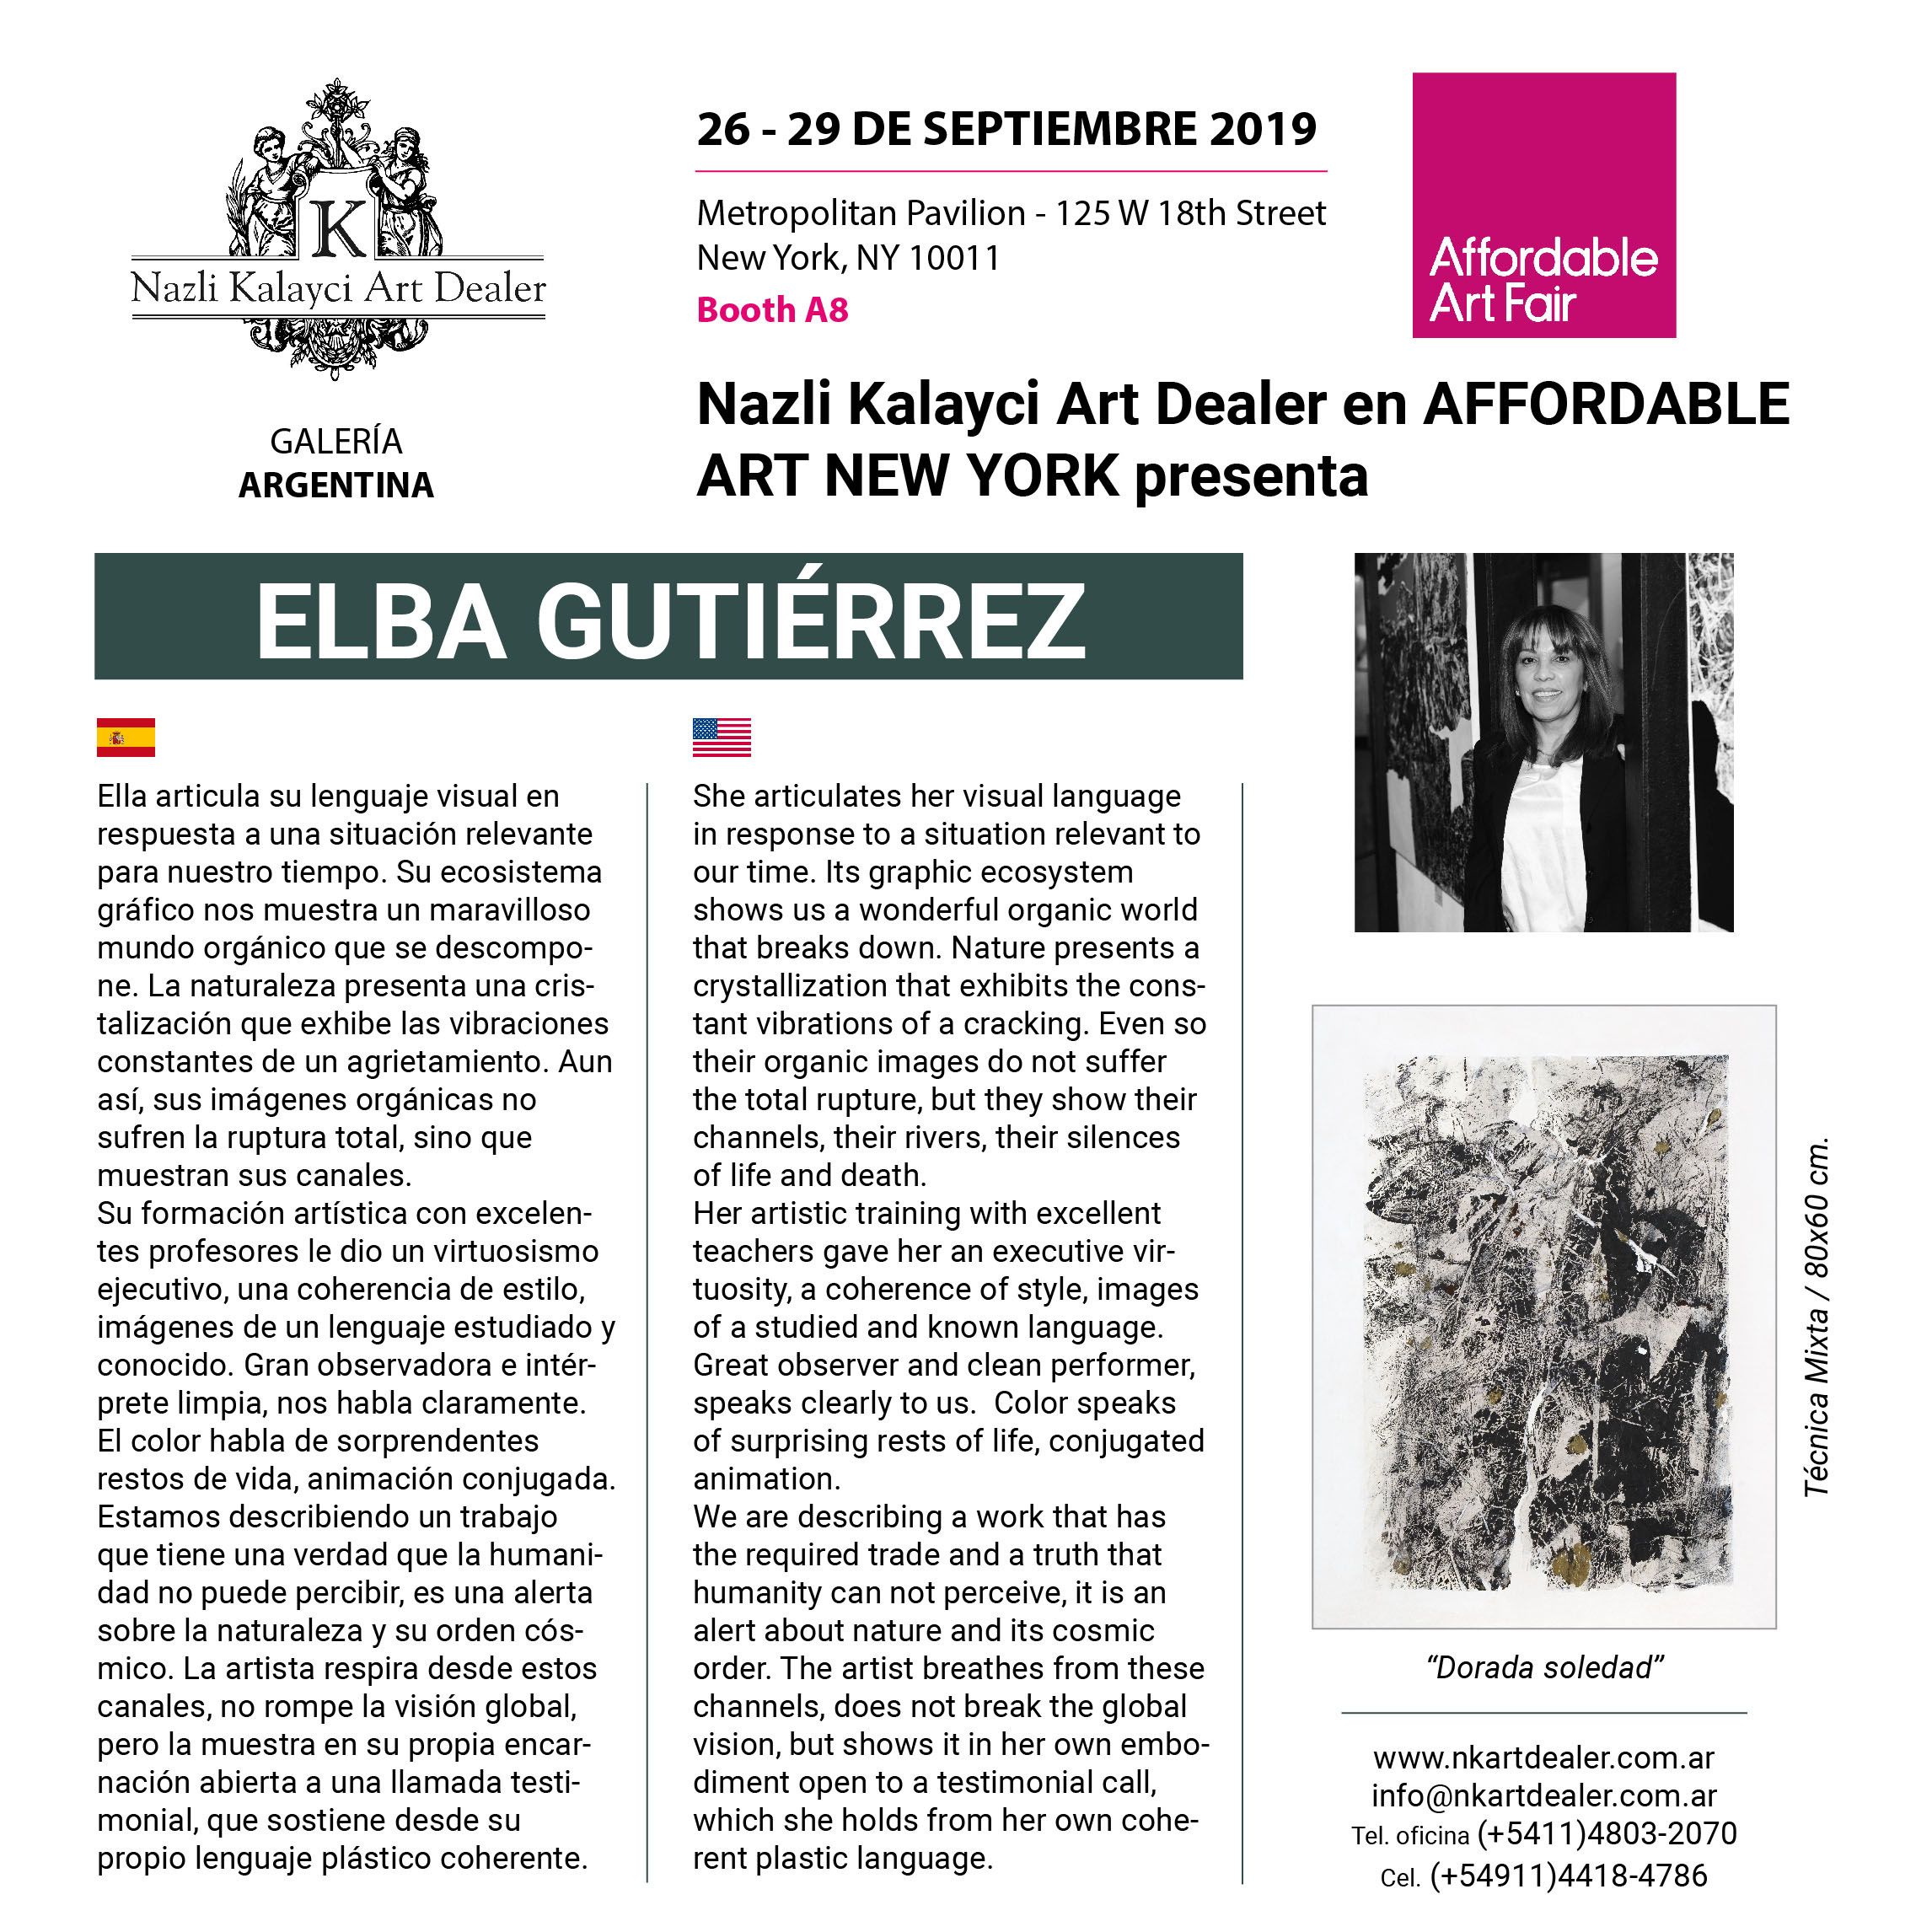 Elba Gutiérrez - Affordable Art